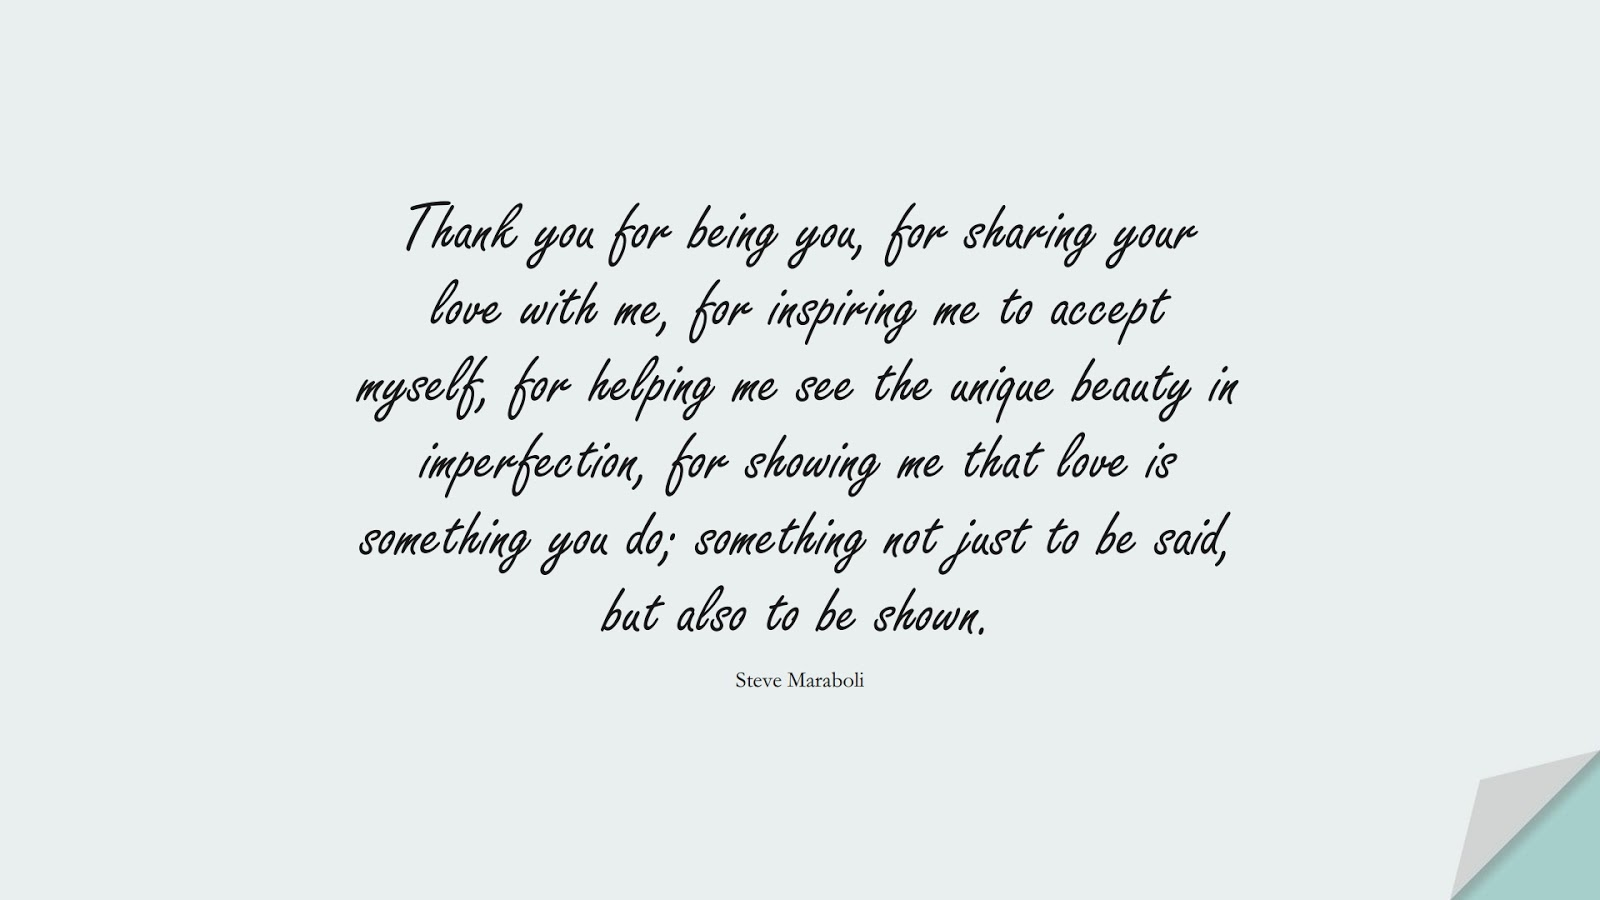 Thank you for being you, for sharing your love with me, for inspiring me to accept myself, for helping me see the unique beauty in imperfection, for showing me that love is something you do; something not just to be said, but also to be shown. (Steve Maraboli);  #LoveQuotes